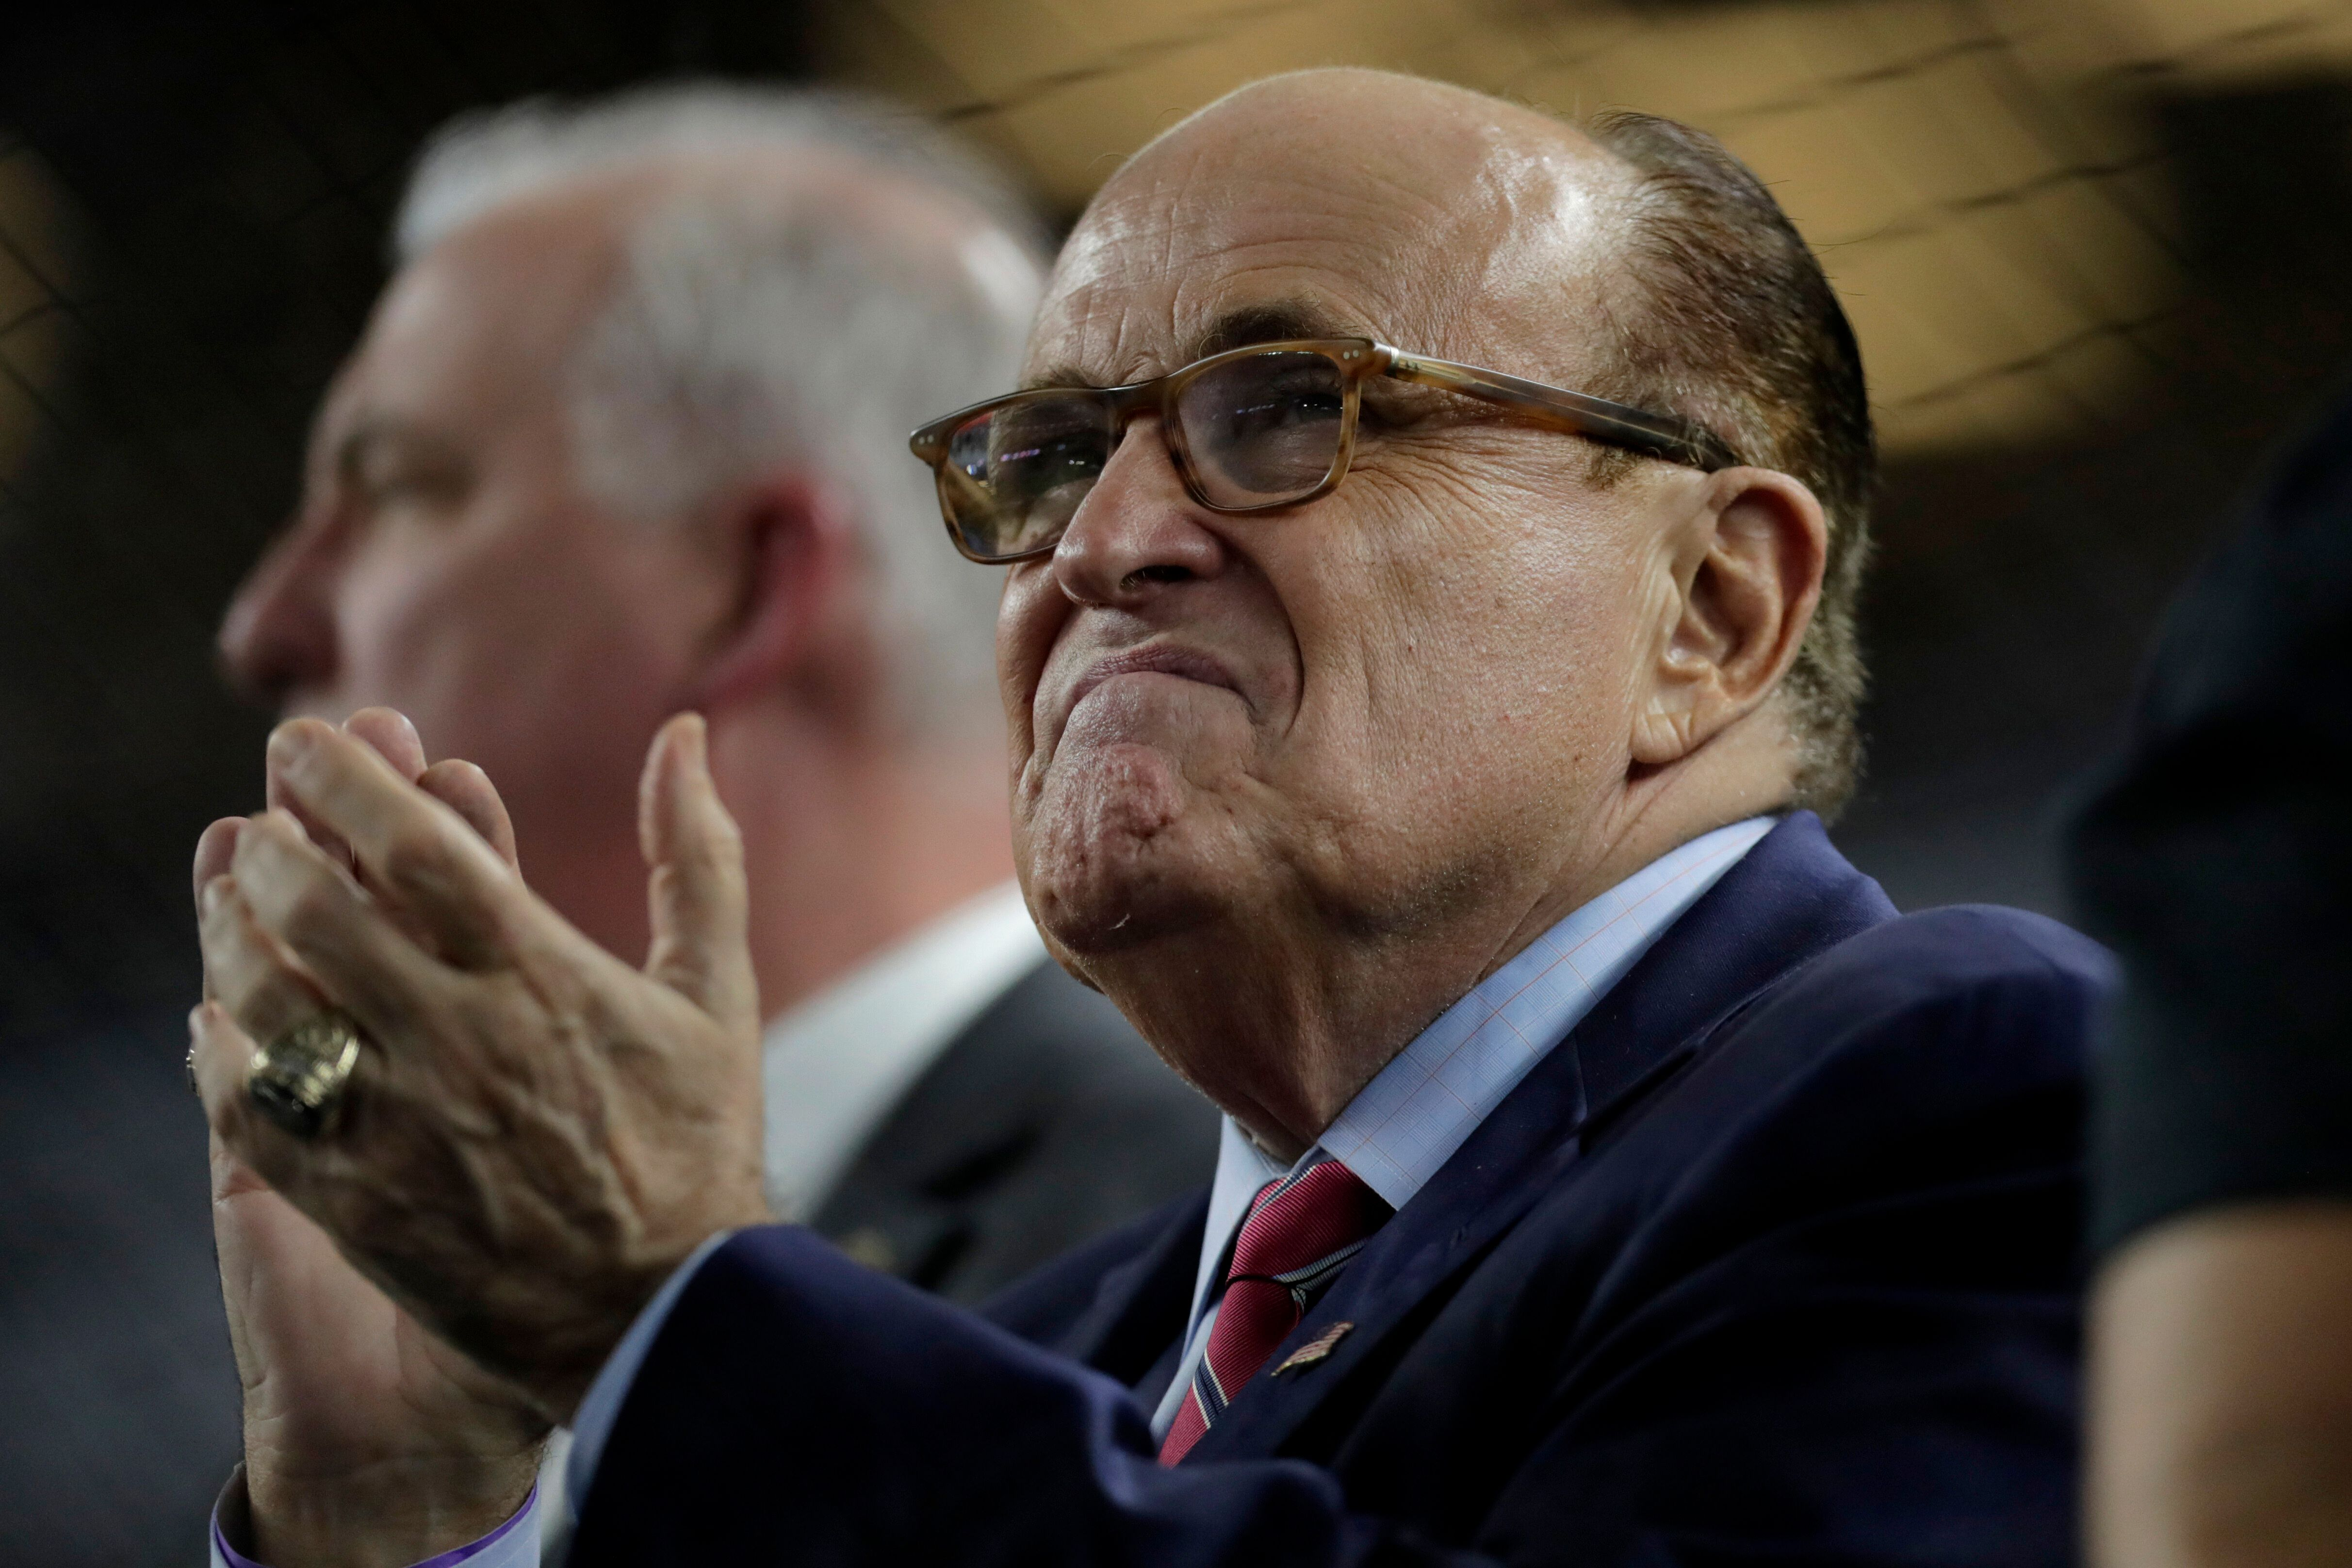 Former New York Mayor Rudy Giuliani has become Trump's personal attorney and chief defender on cable news shows.